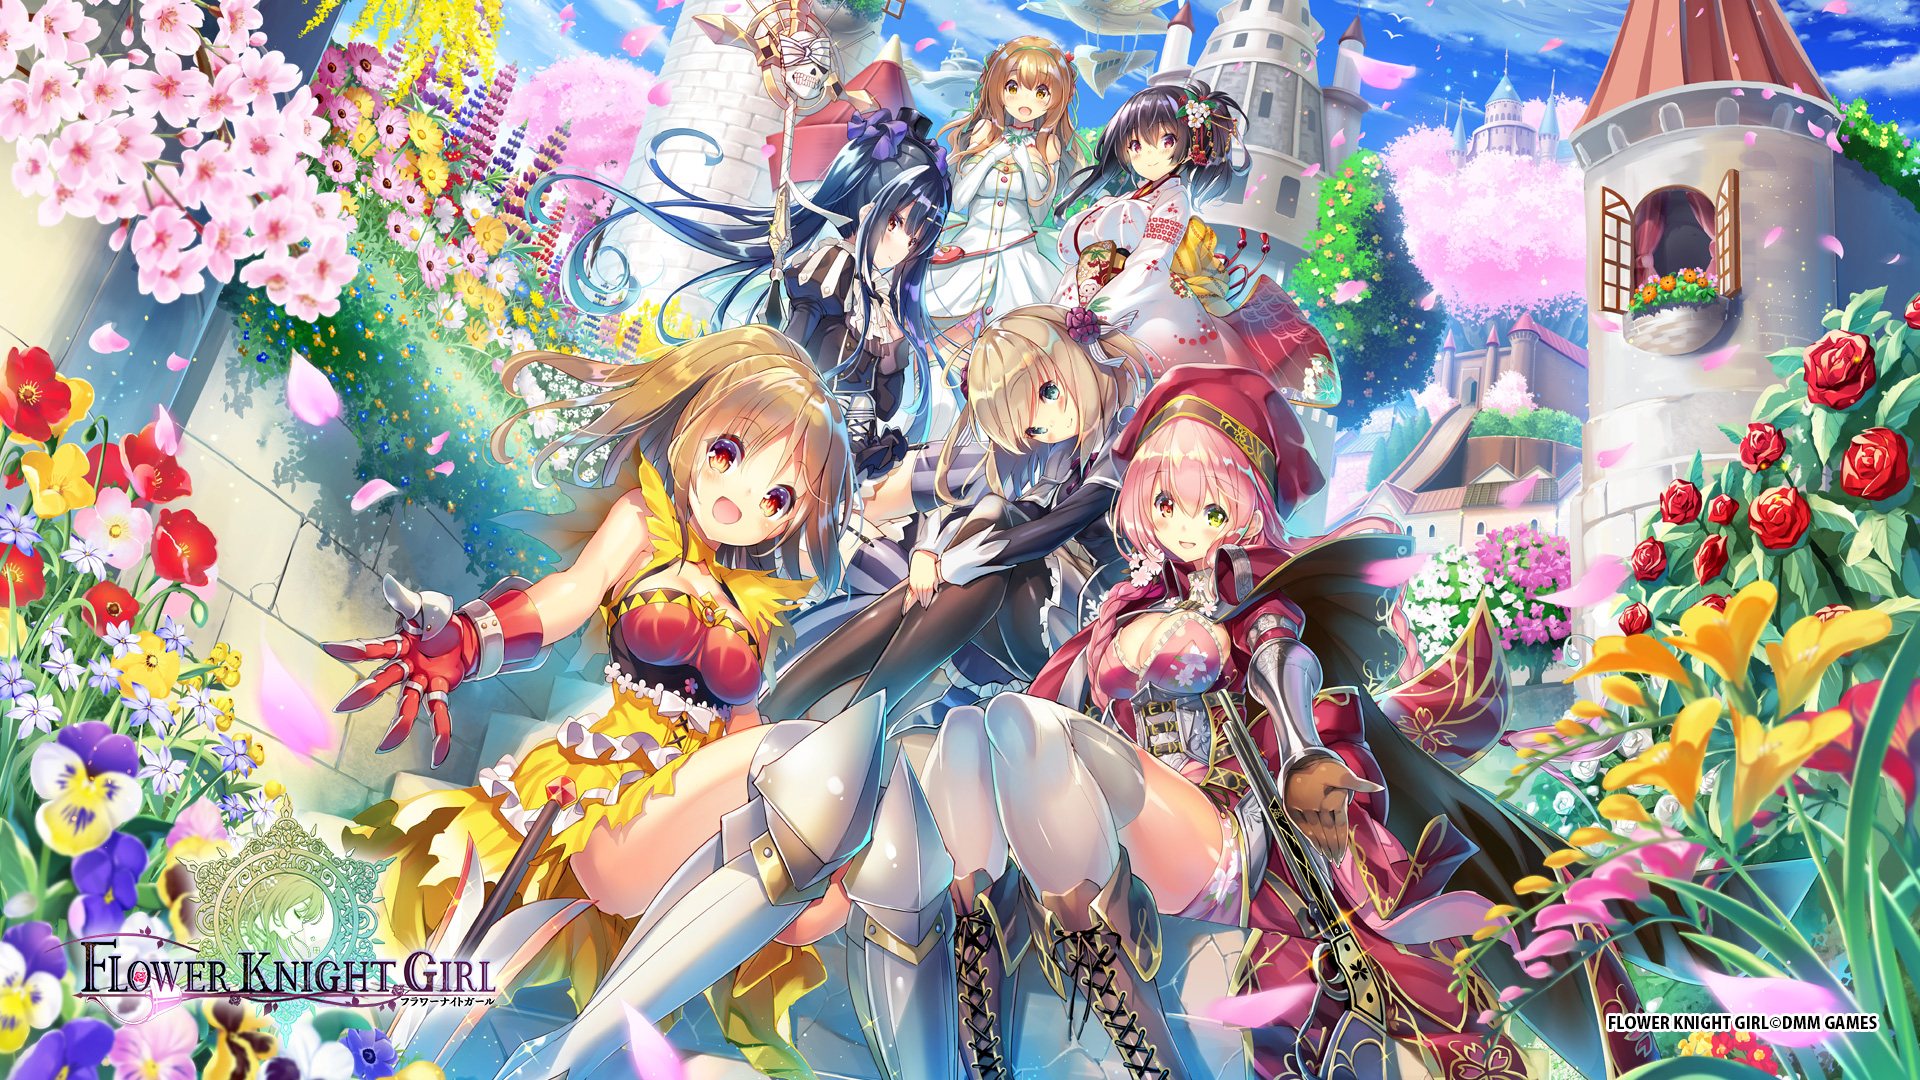 qoo news] dmm games' flower knight girl launched for mobile - qooapp